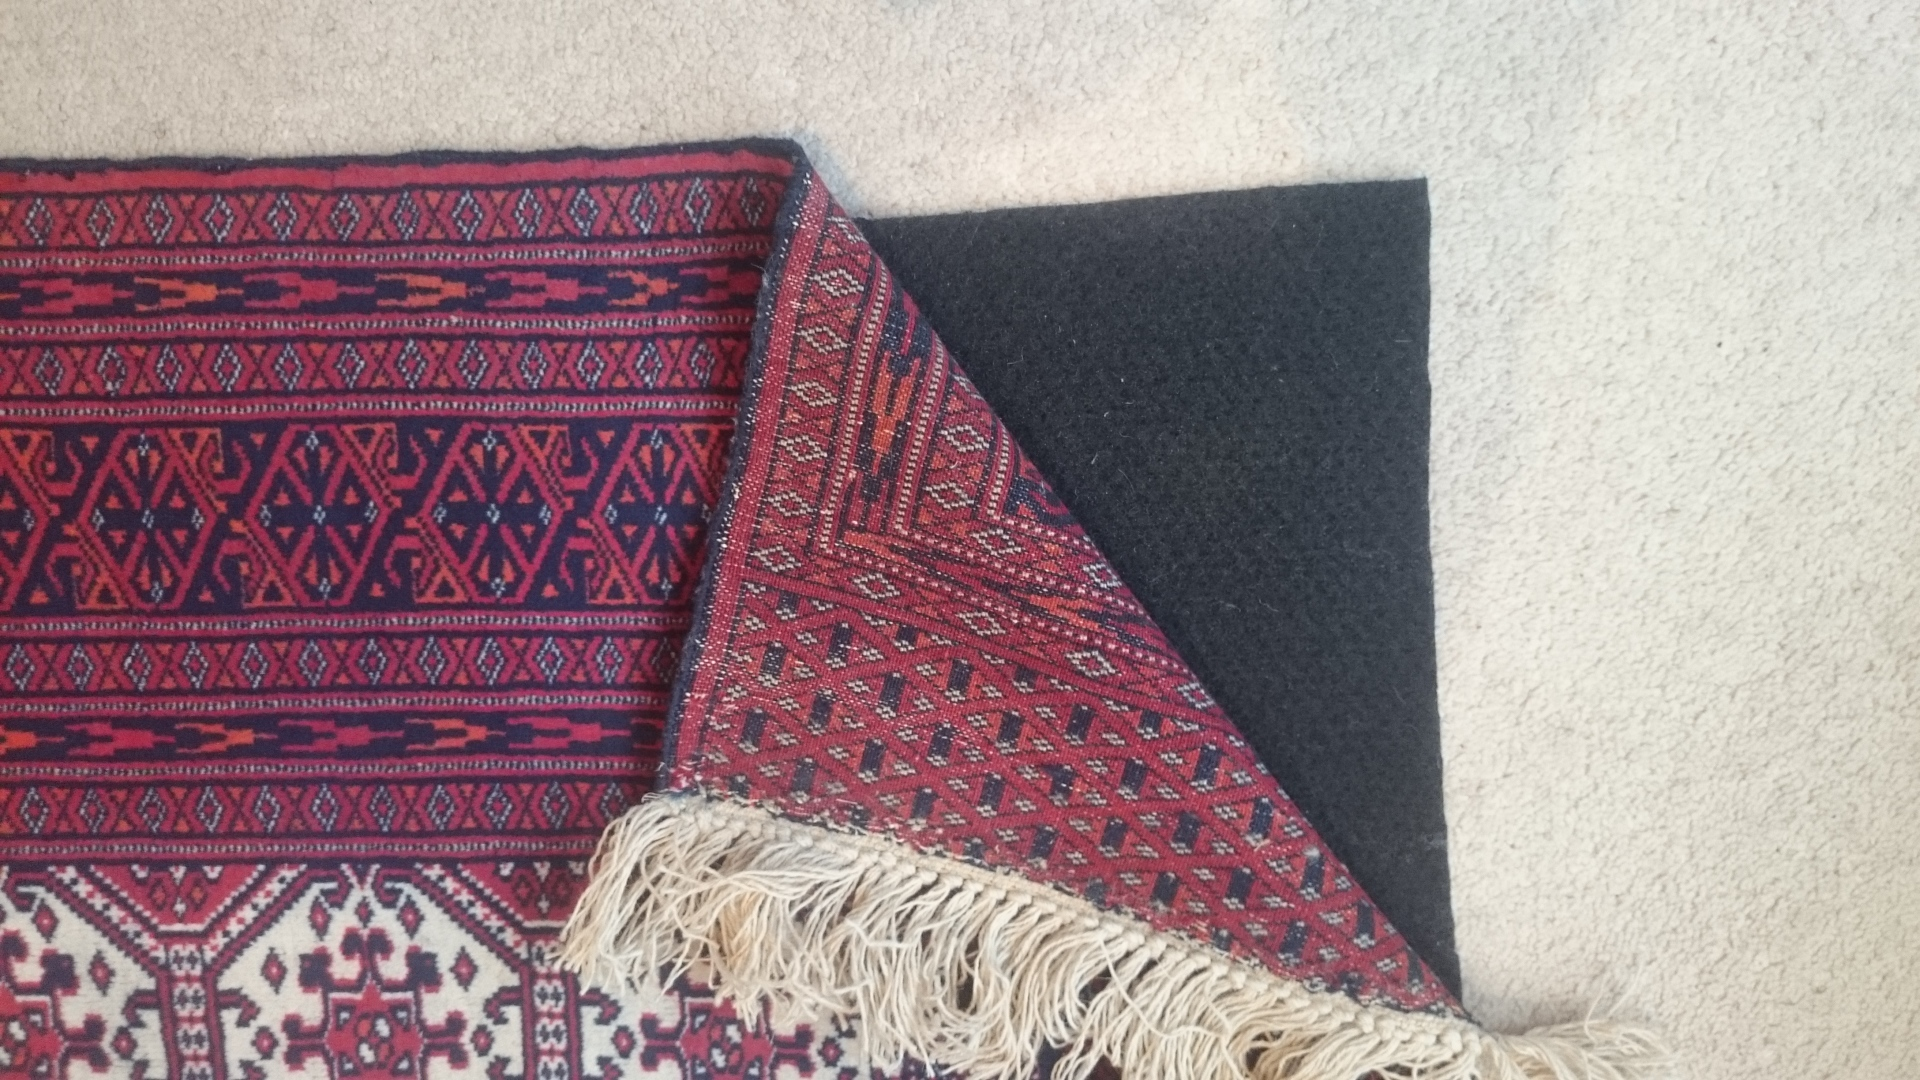 Preventing rug movement/damage